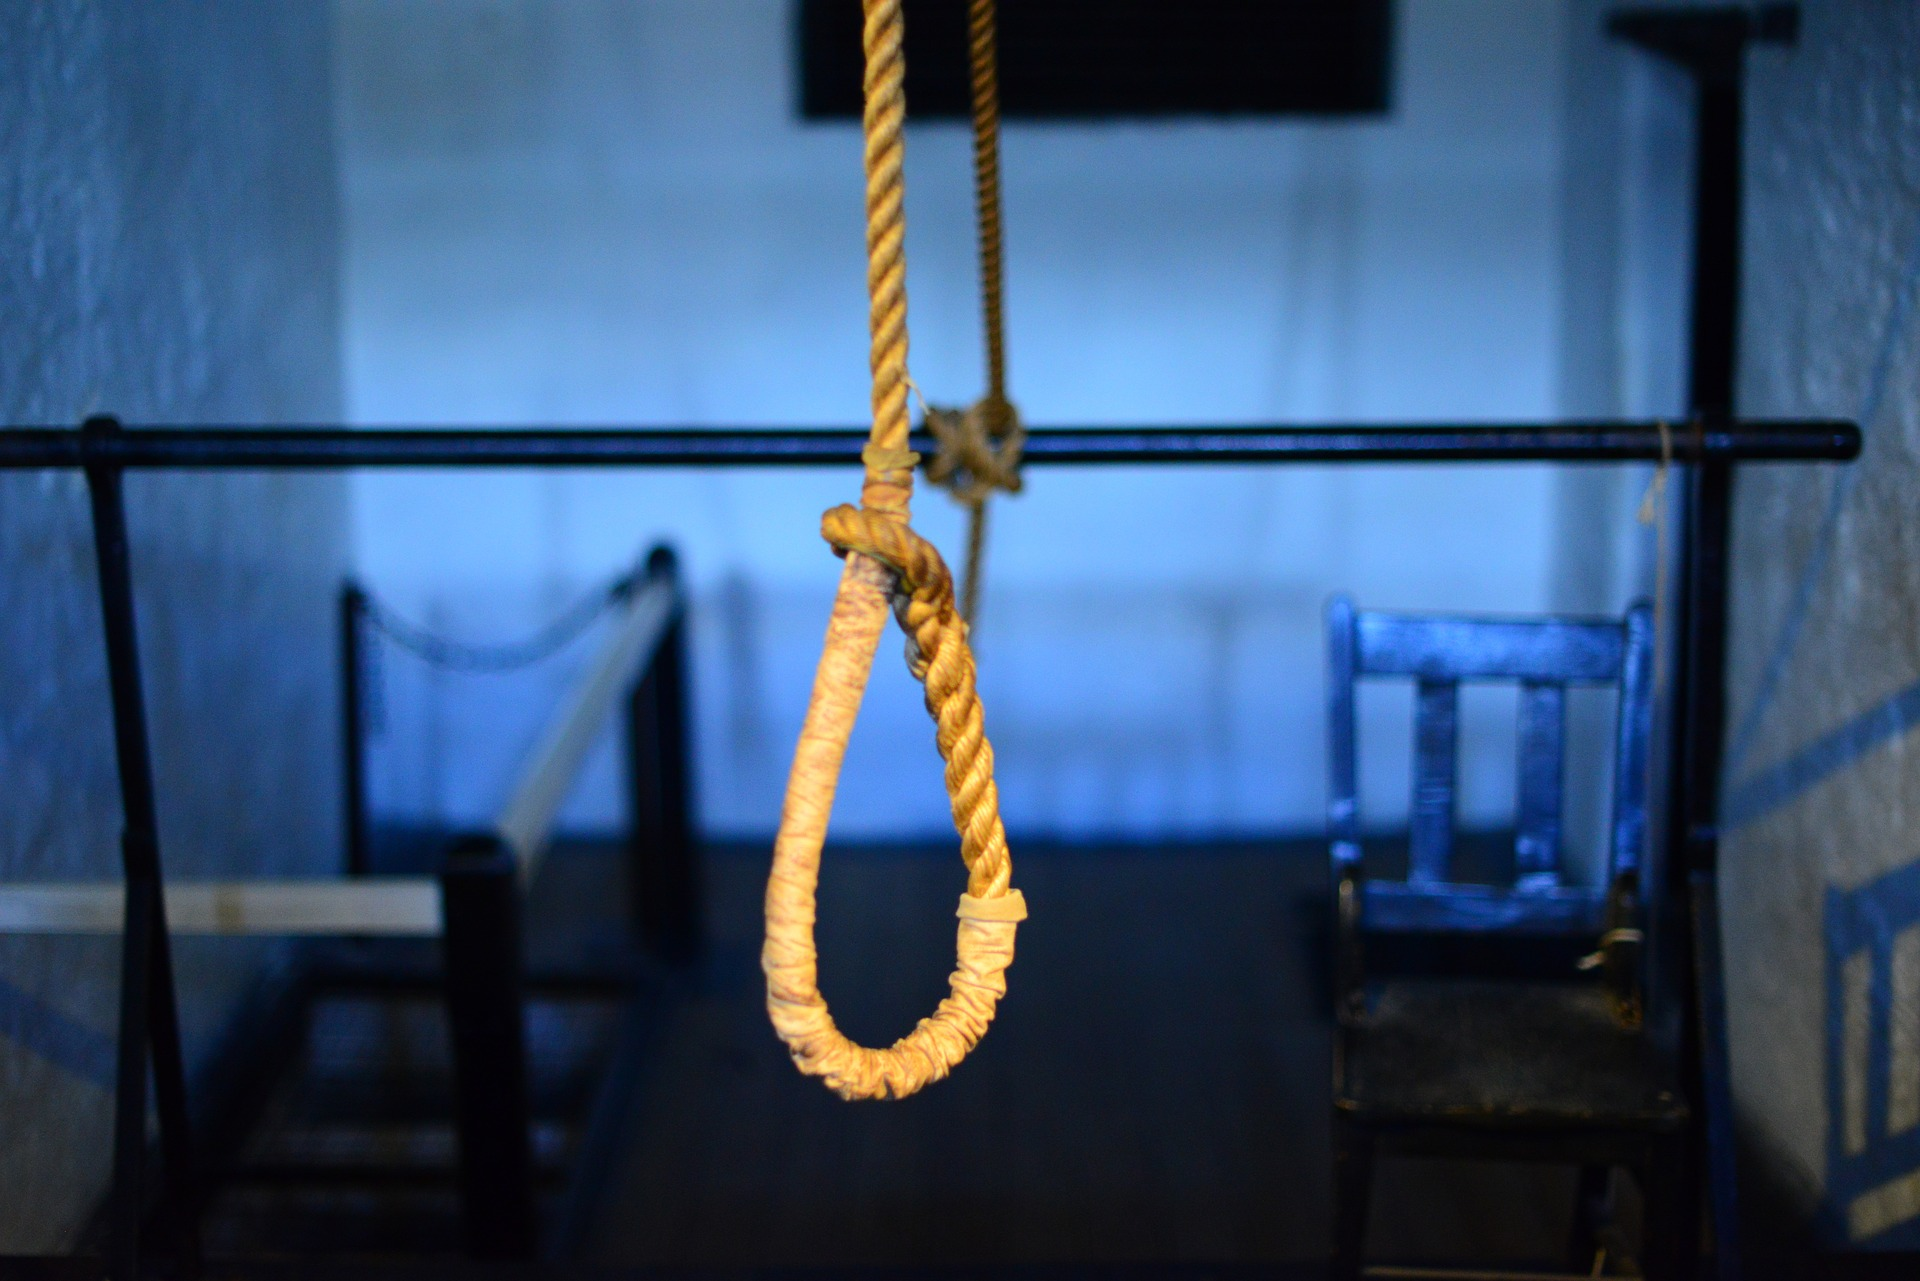 A noose hanging freely in a room